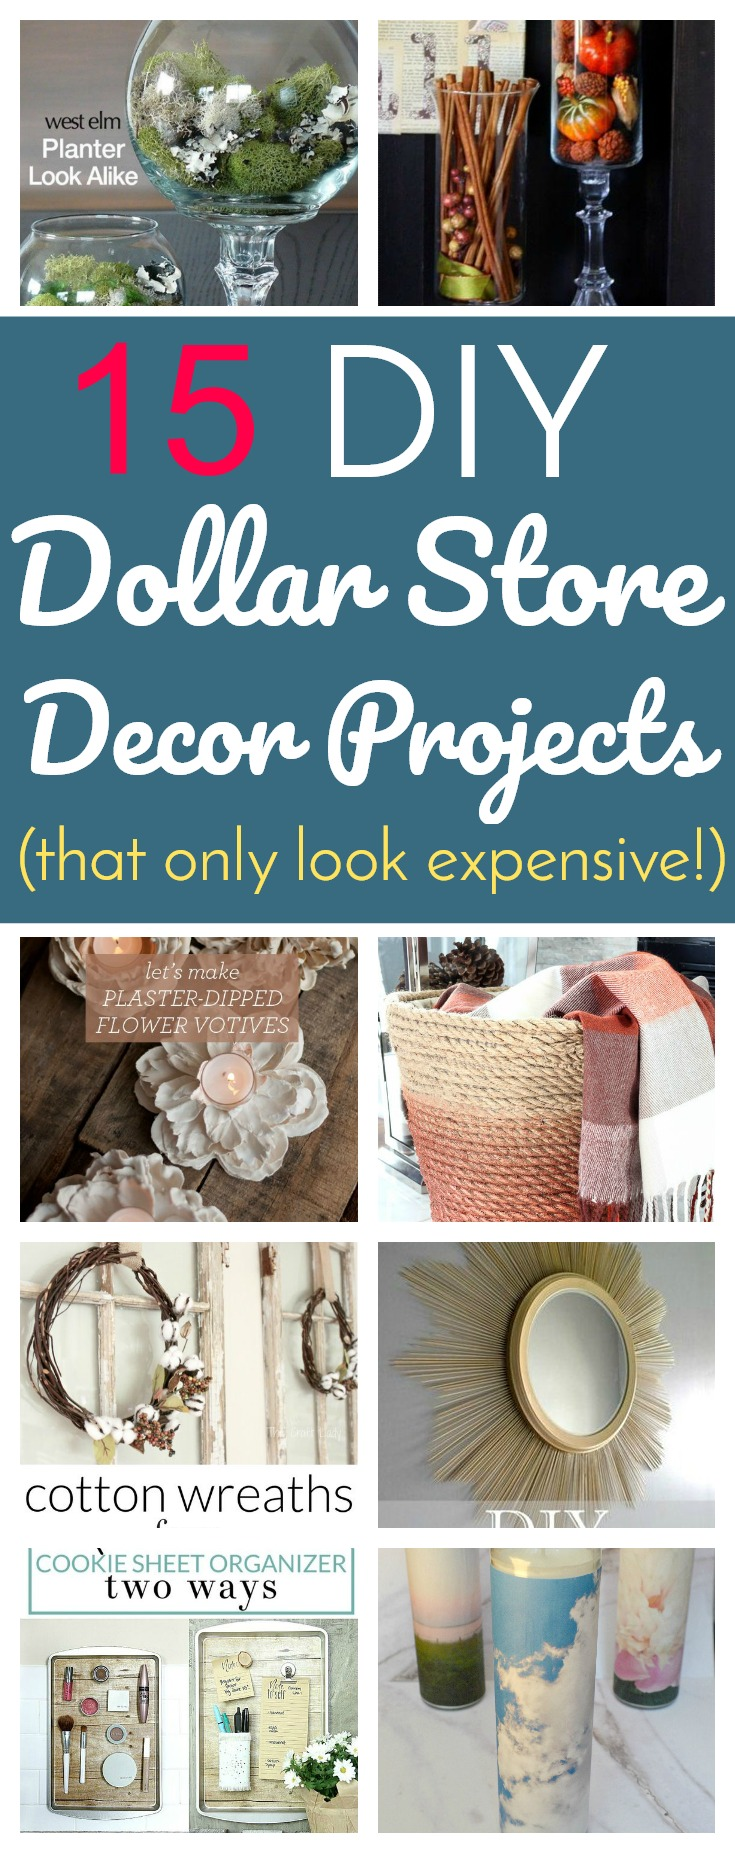 Diy Wall Art That Looks Expensive : Diy dollar store decor projects that only look